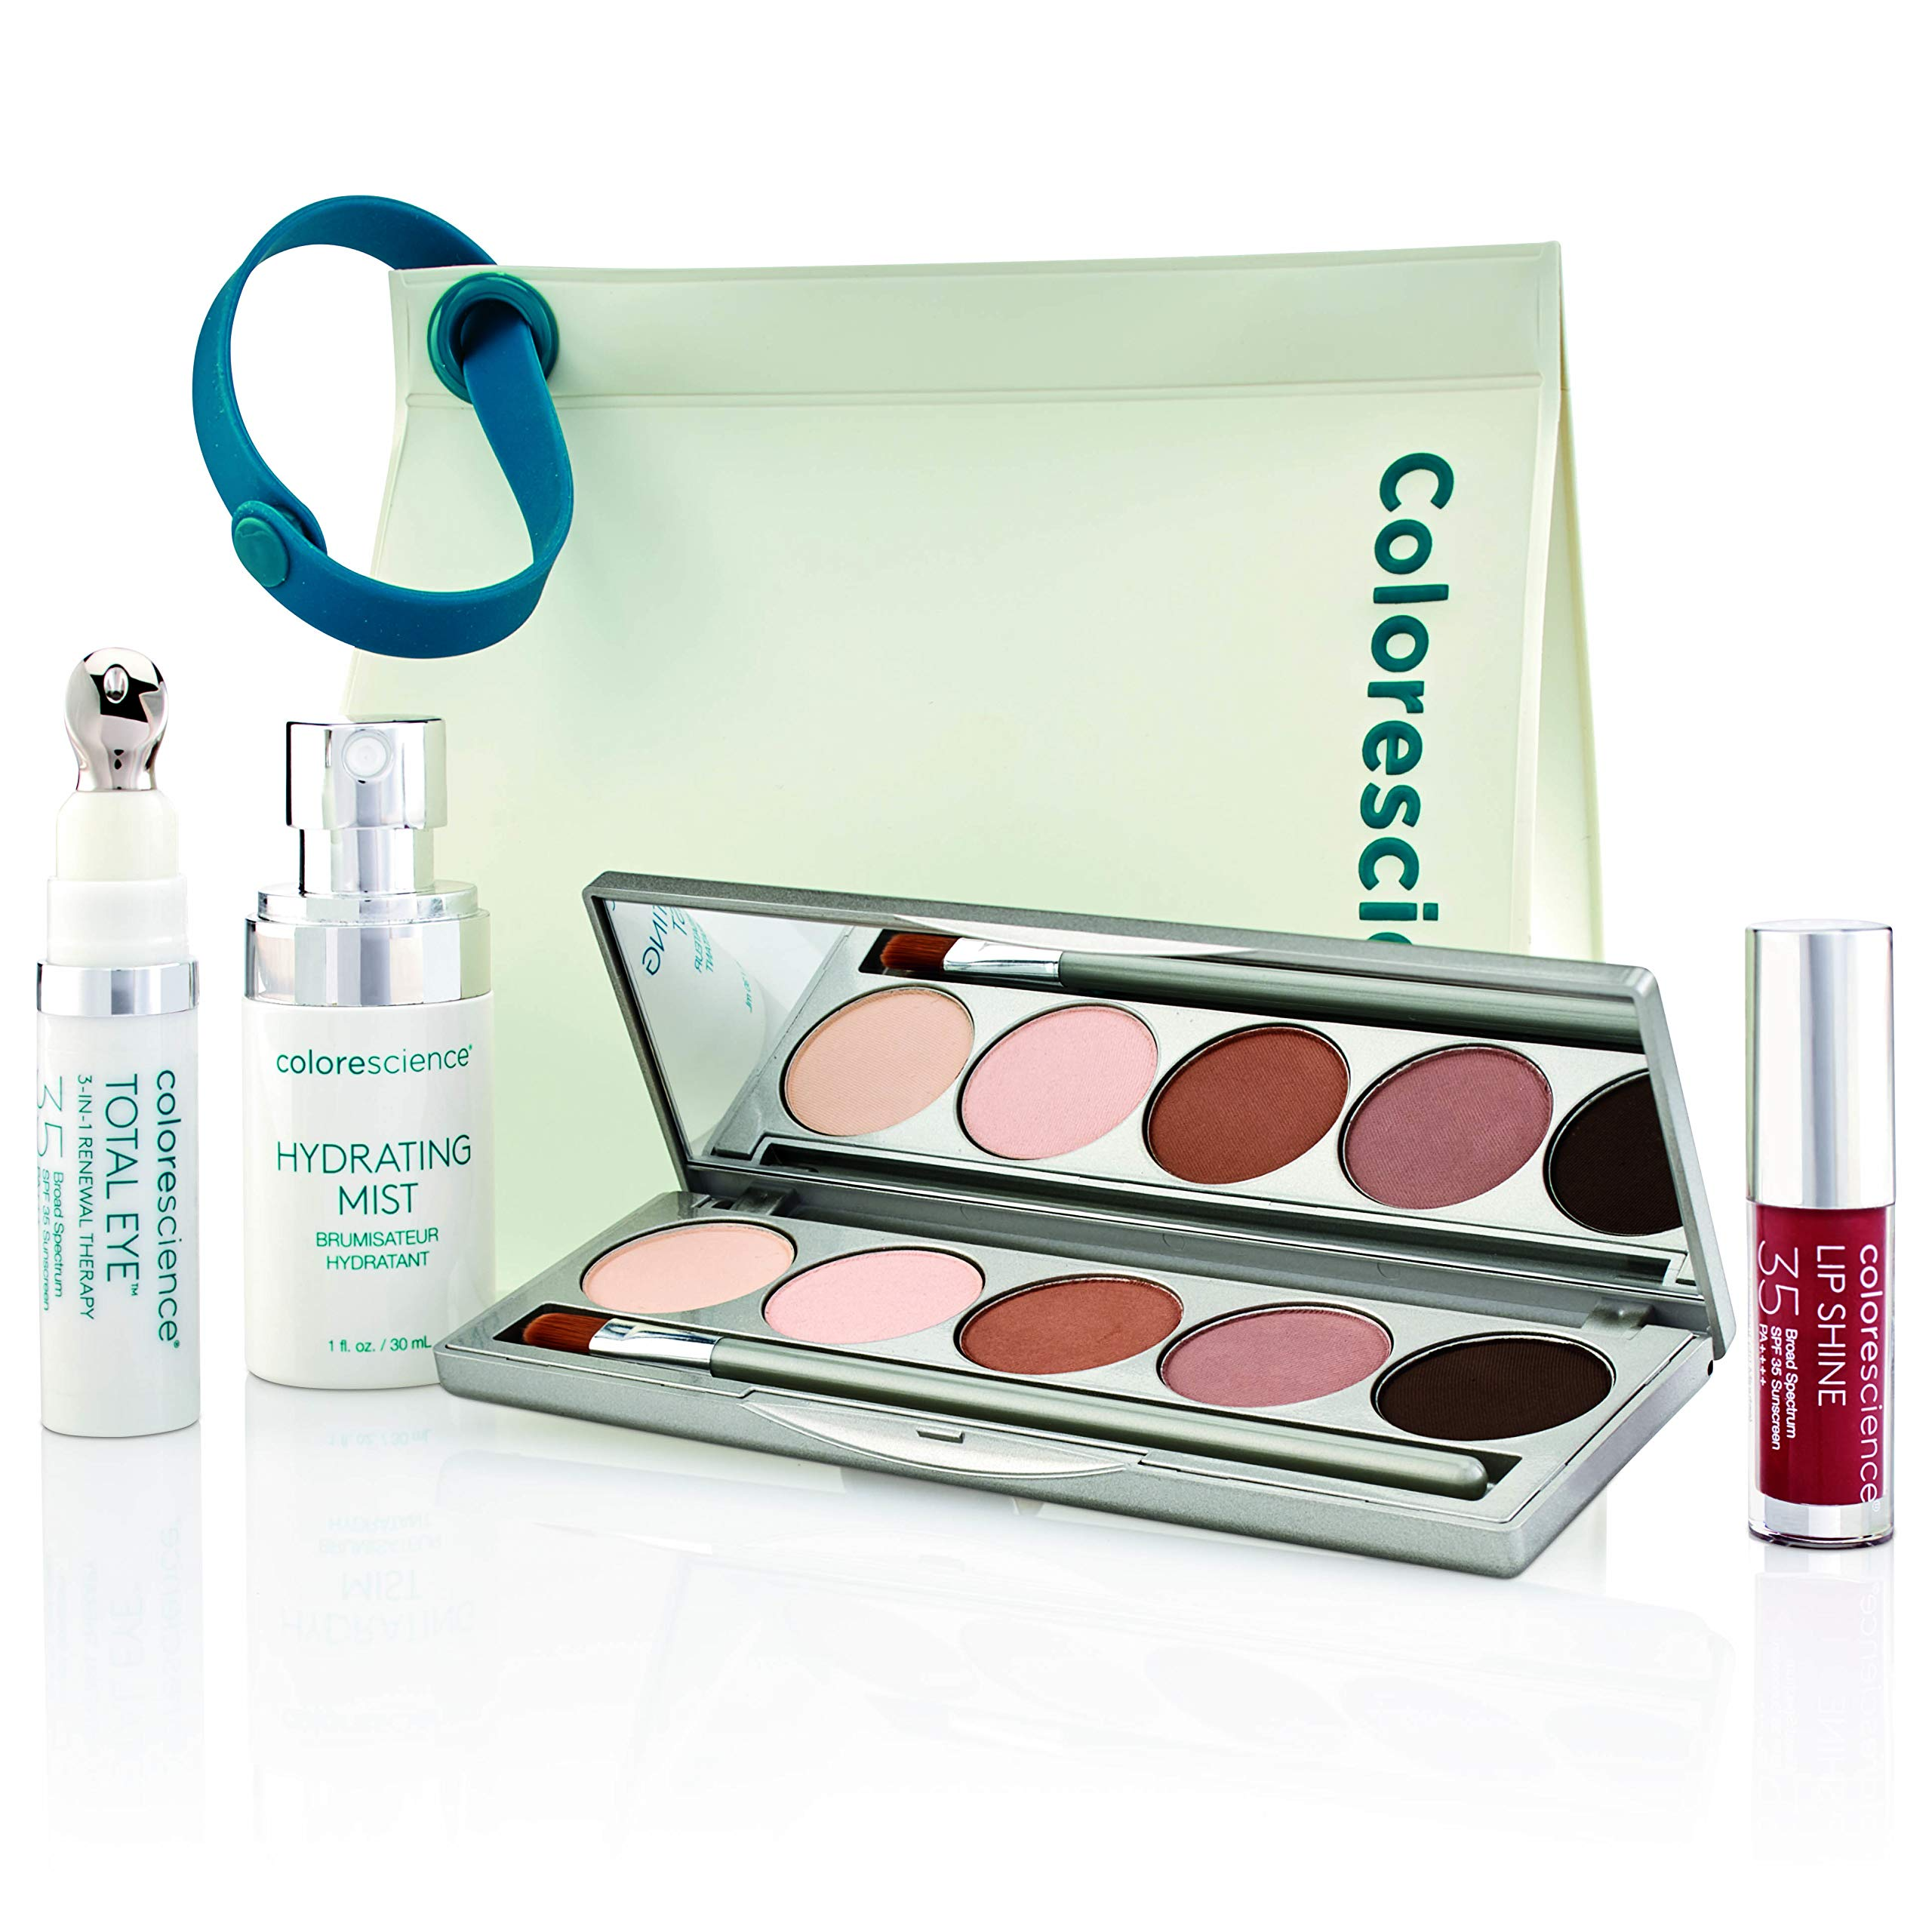 Colorescience Refresh and Renew Kit, 1.61 oz by Colorescience (Image #1)